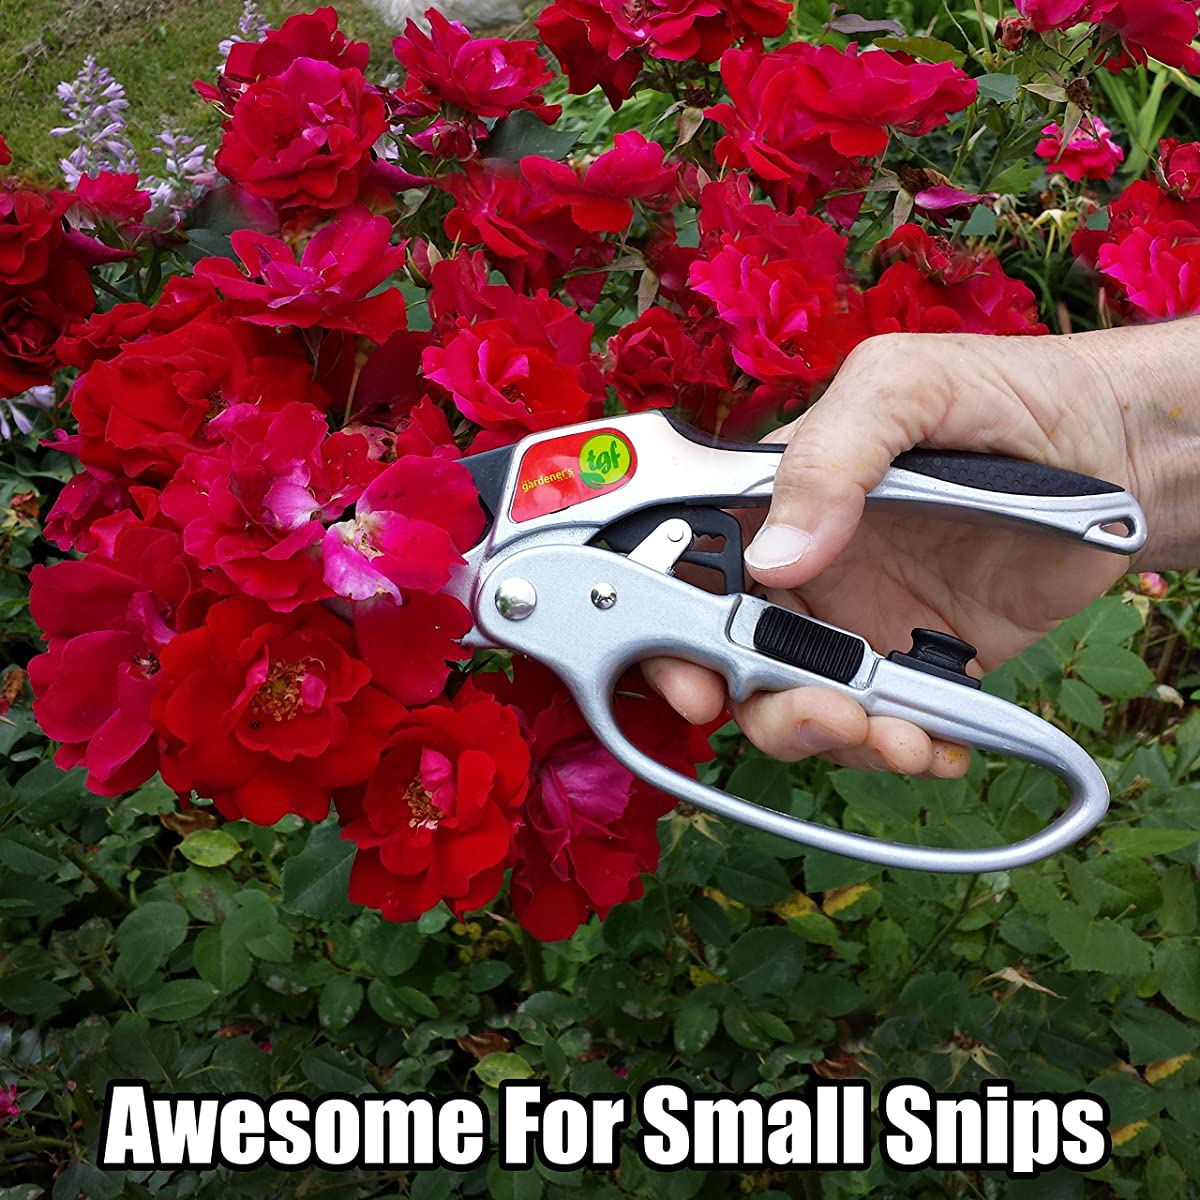 Pruners, Ratchet Pruning Shears, Garden Tool, For Weak Hands, Gardening Gift For Any Occasion, Anvil Style, By The Gardeners Friend